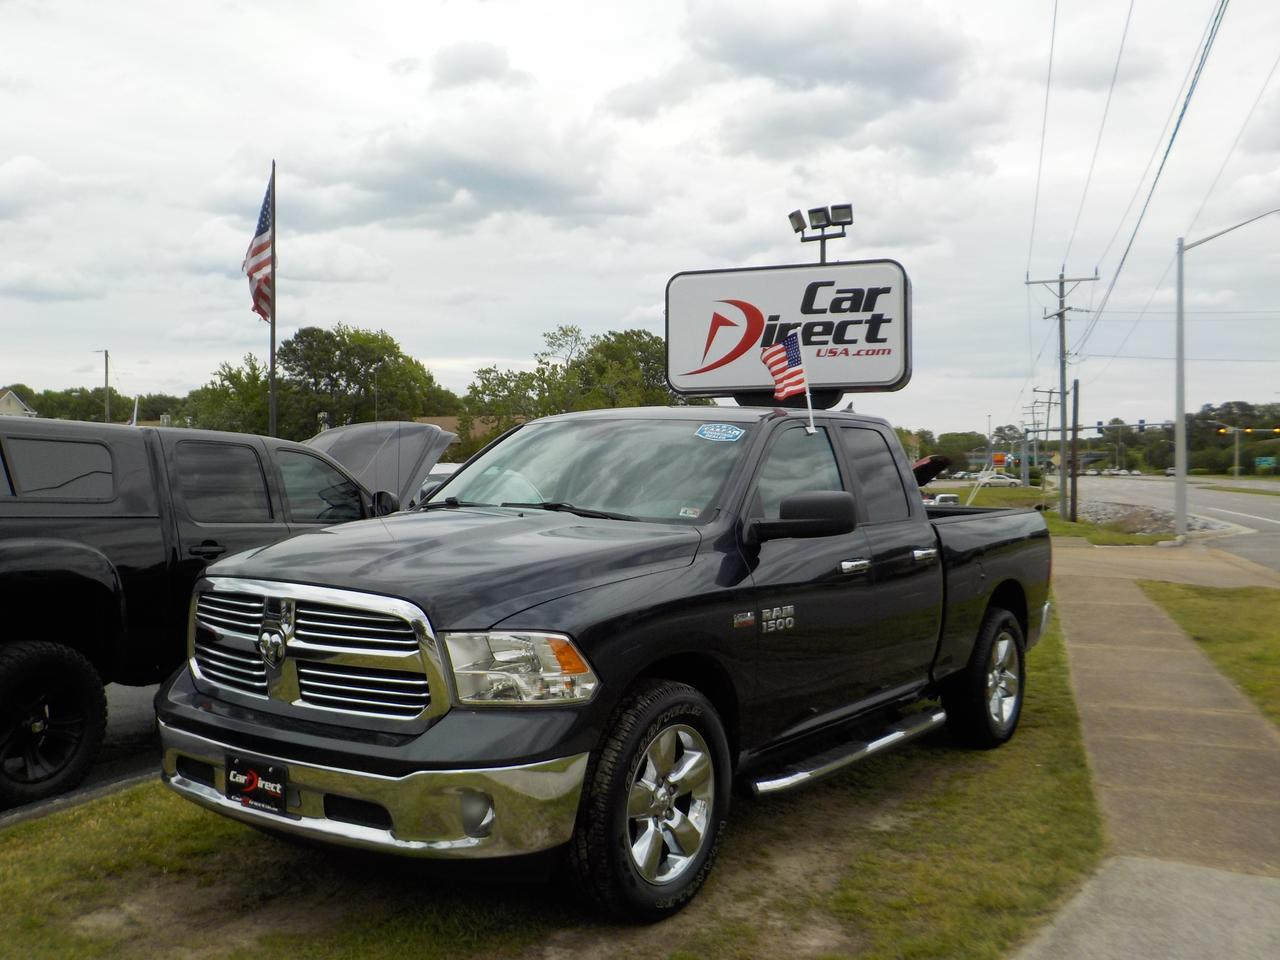 2013 RAM 1500 BIGHORN CREW CAB RWD, RUNNING BOARDS, REMOTE START, UCONNECT, TOW, BACKUP CAMERA, AUXILIARY PORT! Virginia Beach VA